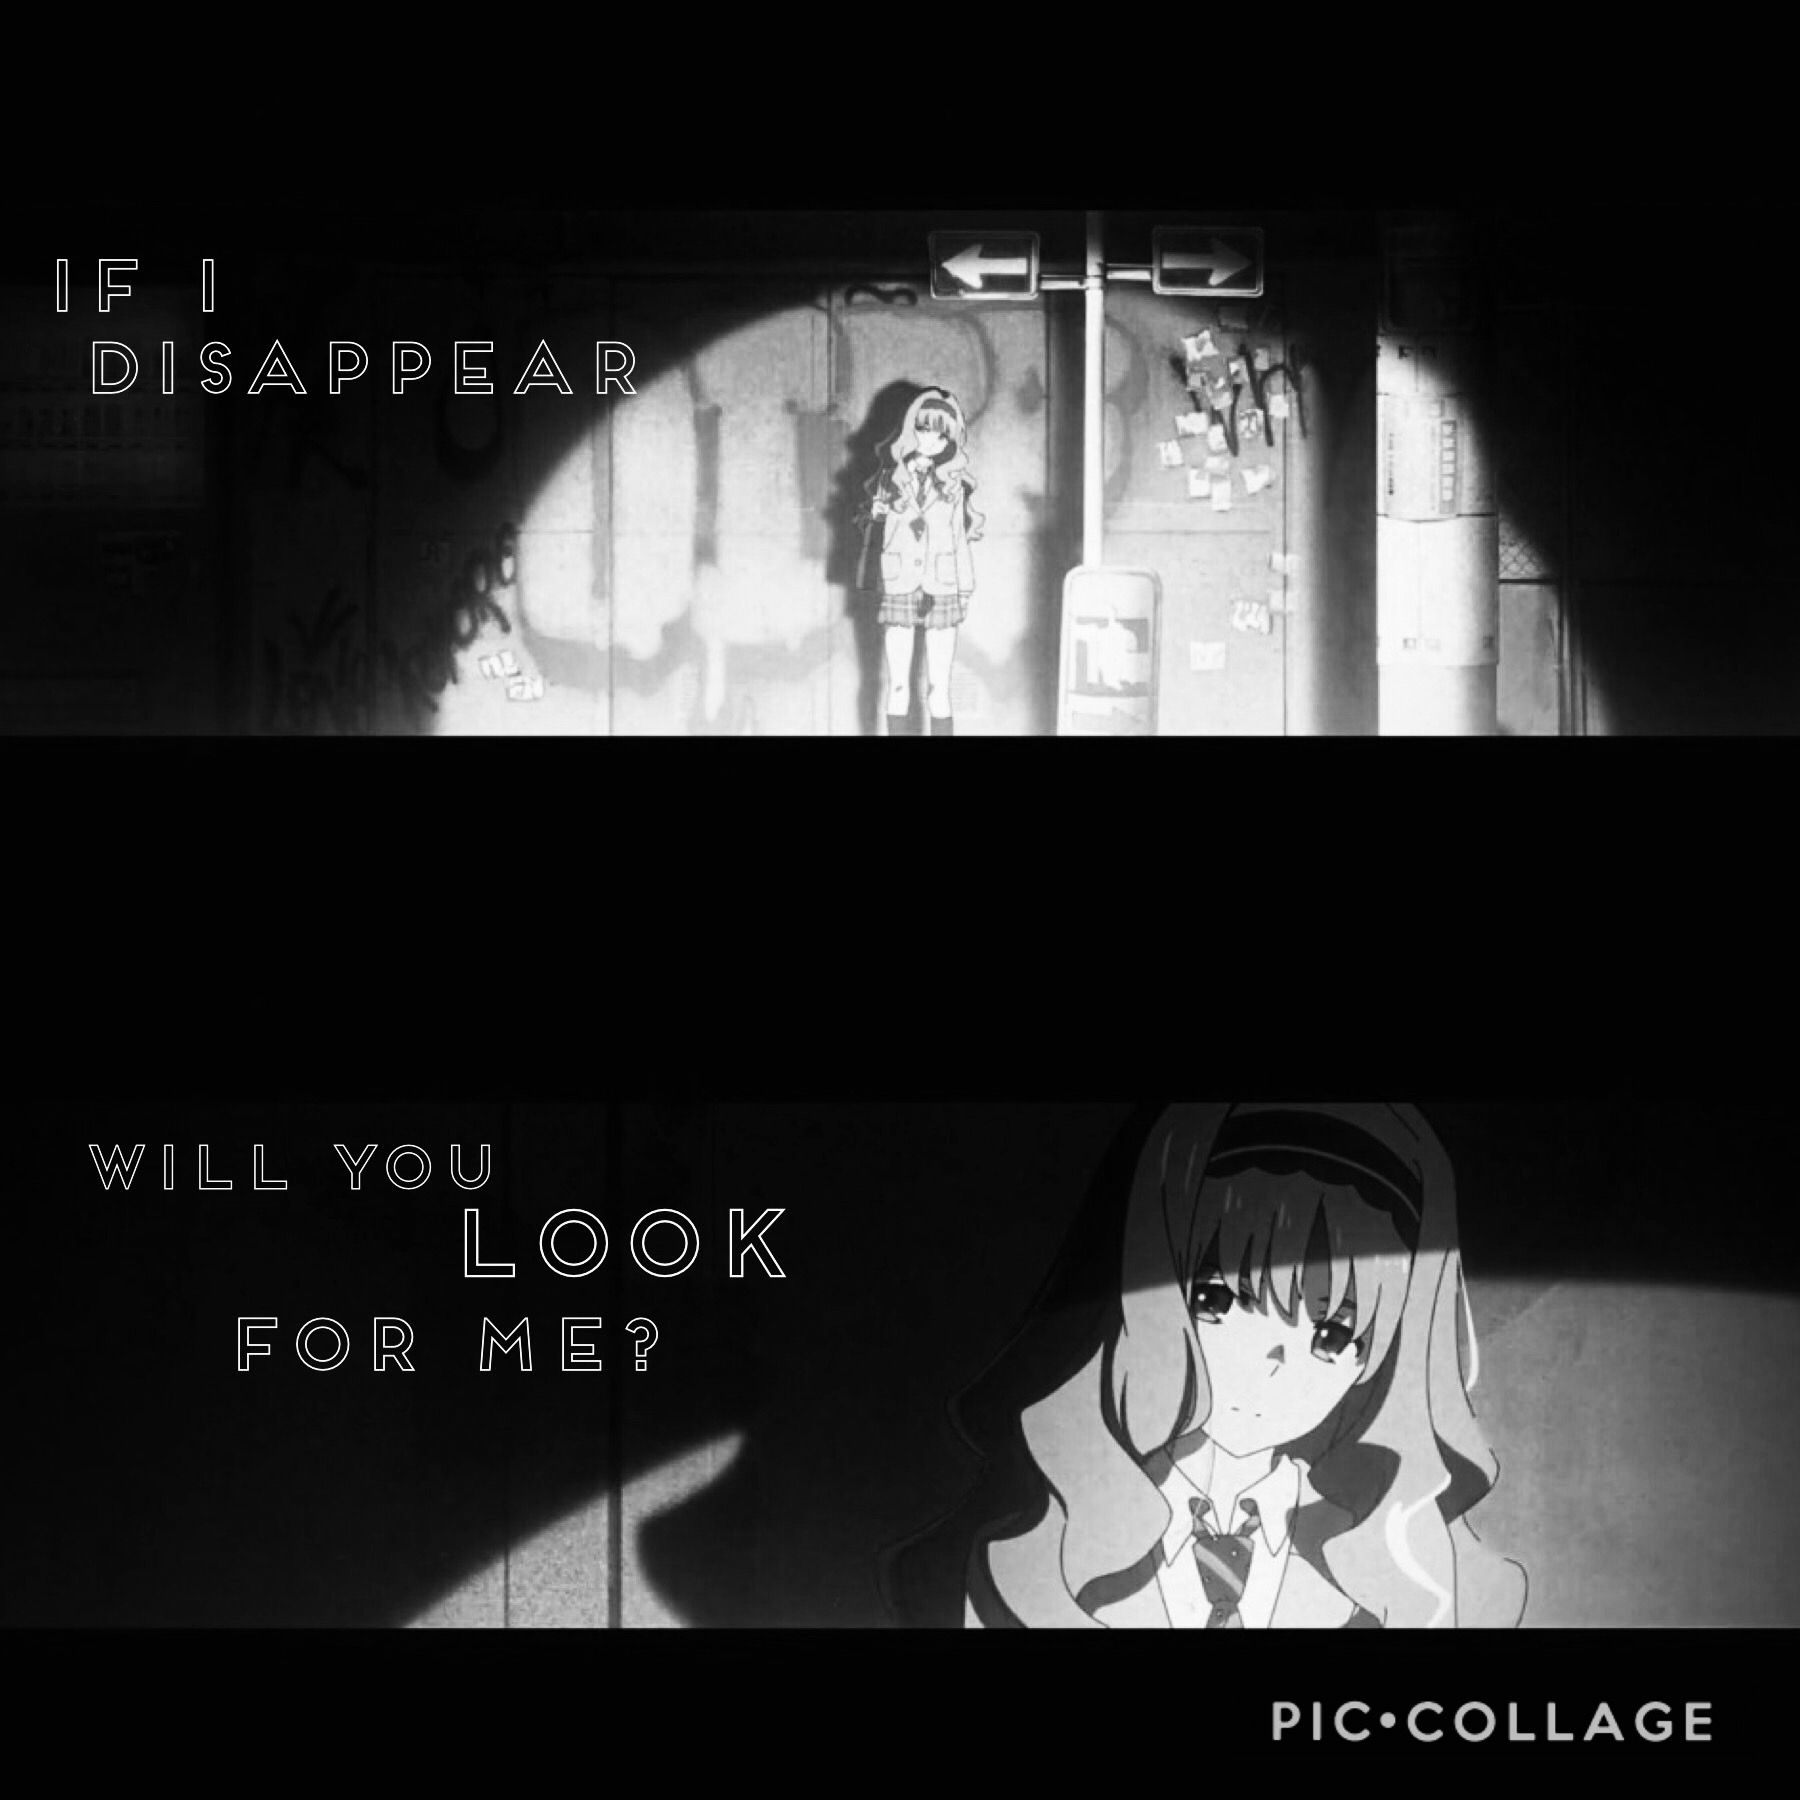 If I Disappear Will You Look For Me Anime Qoutes Anime Sketch